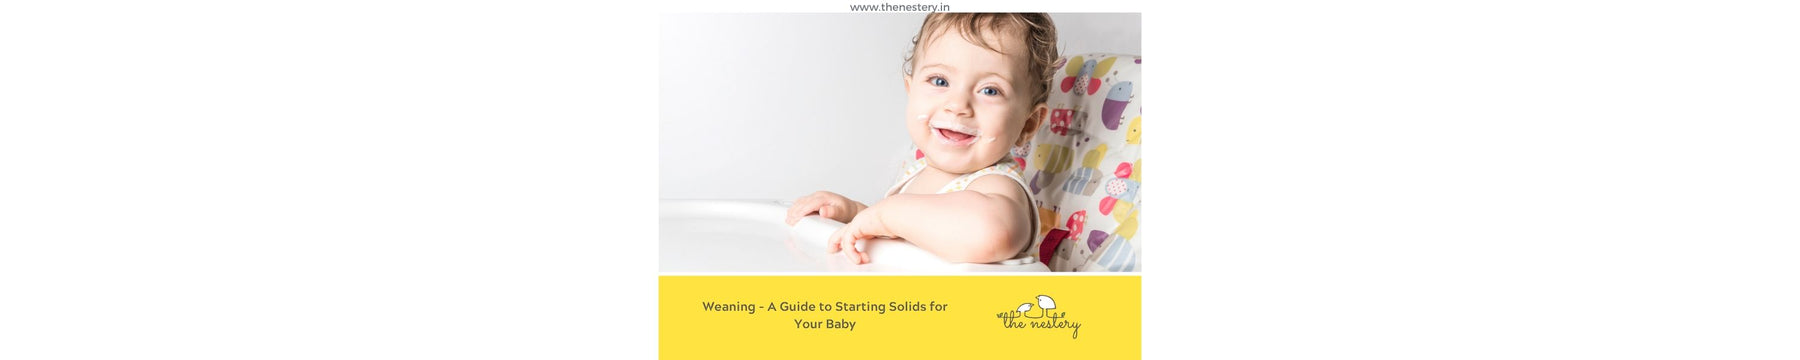 Weaning - A Guide to Starting Solids for Your Baby